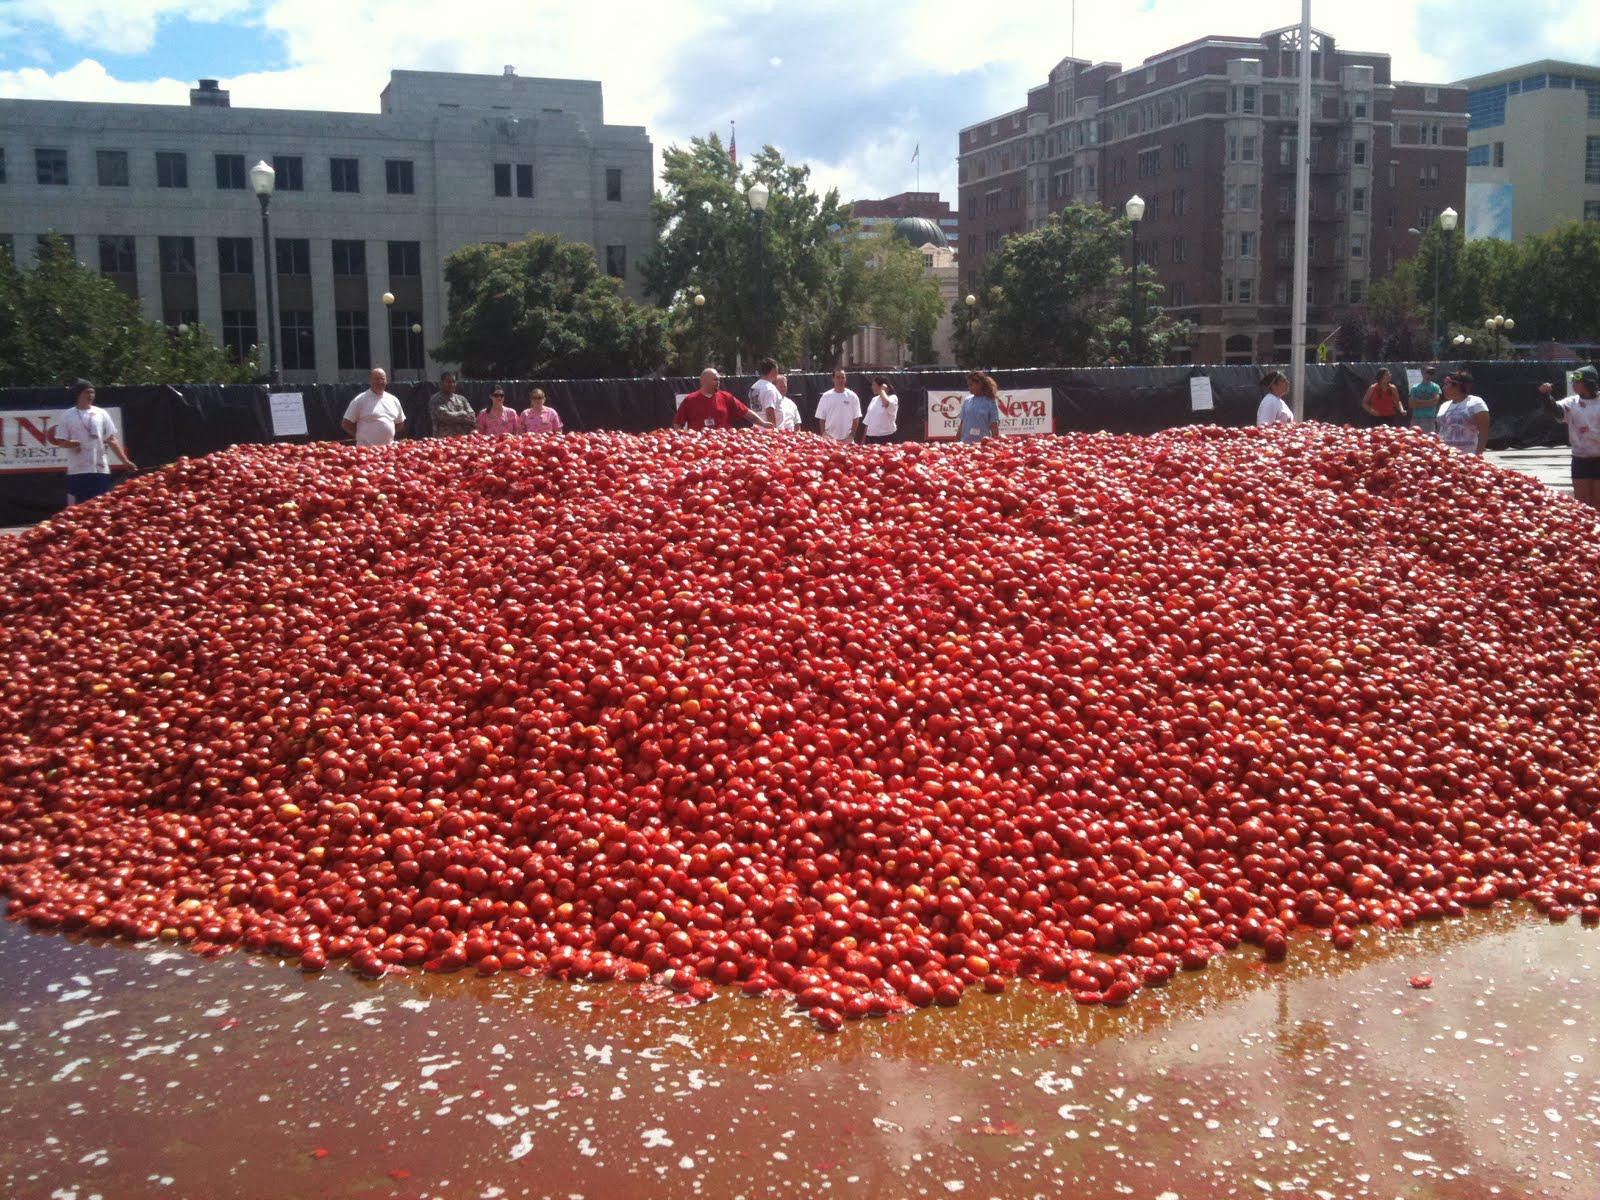 Thousands of Tomatoes